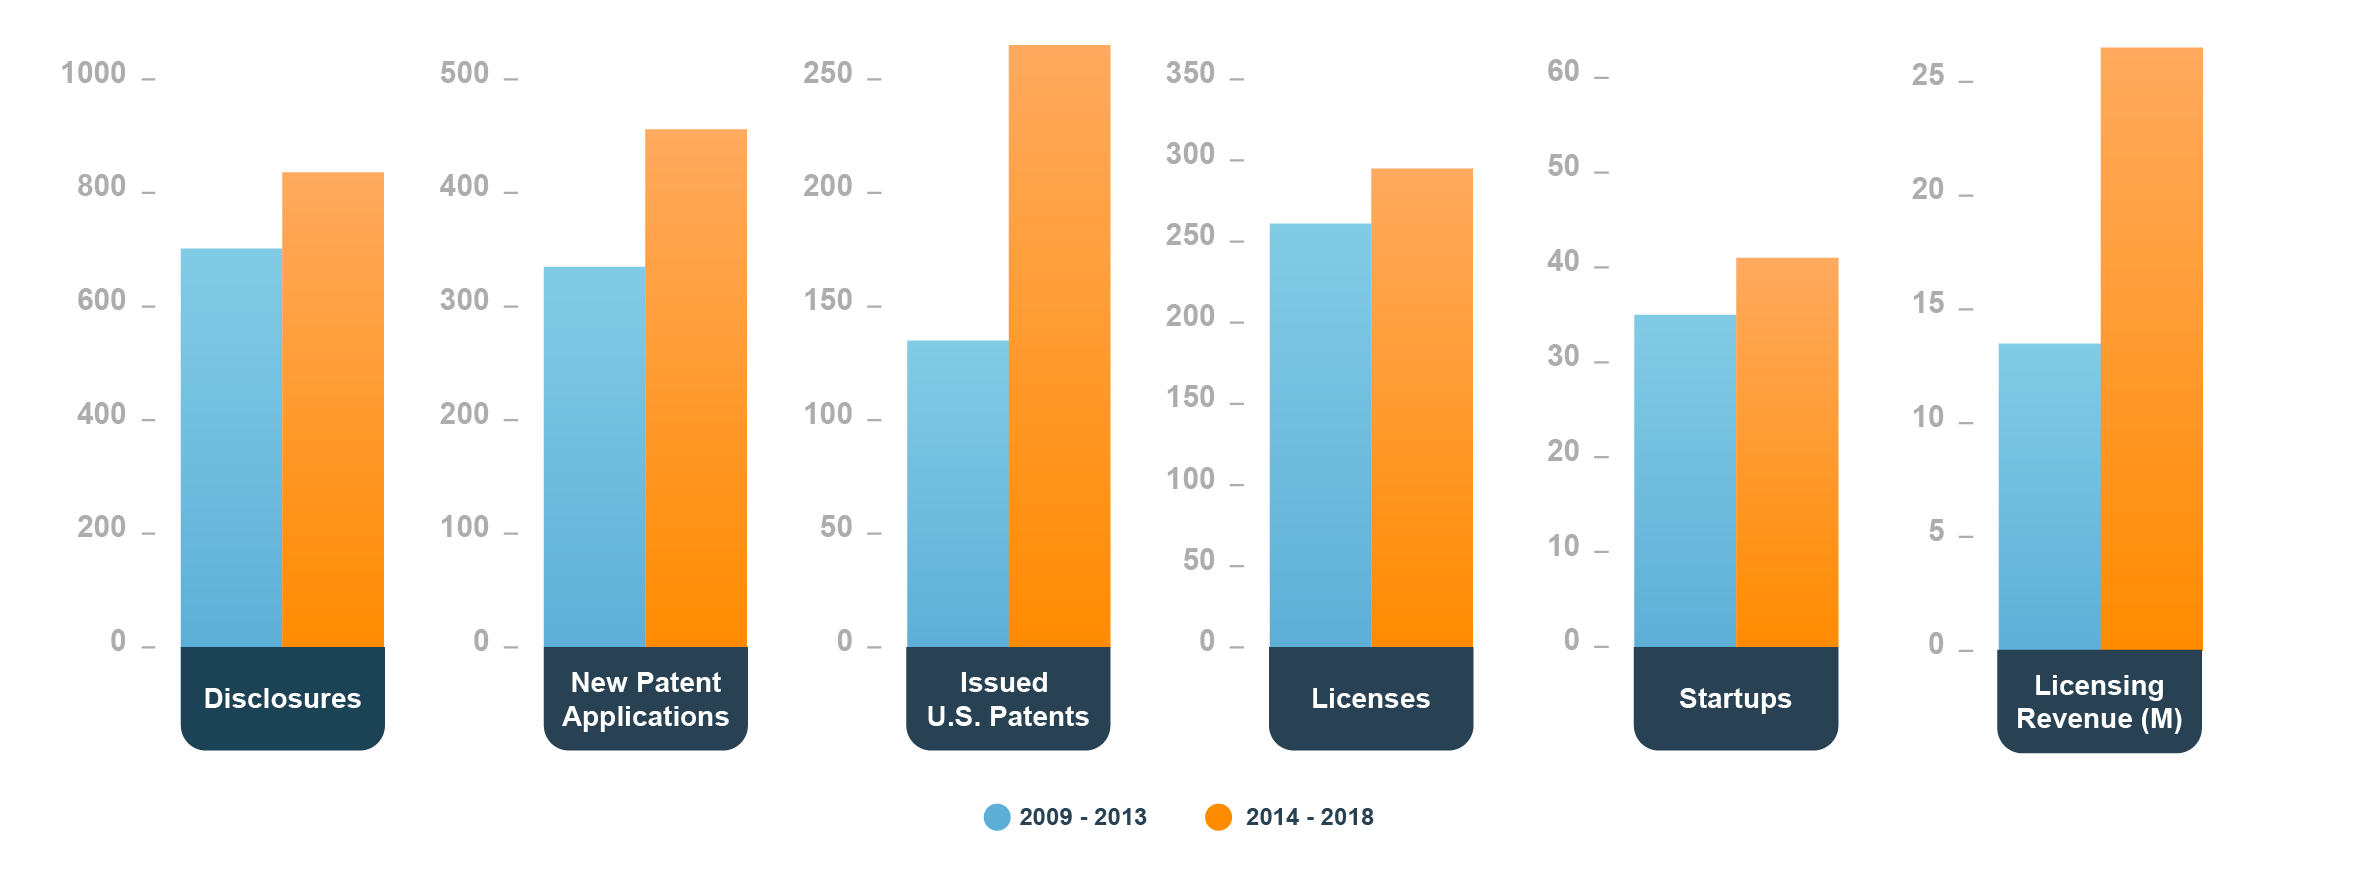 From 2009-2013: Disclosures: 702. New Patent Applications: 335. Issued US Patents: 135. Licenses: 261. Startups: 35. Licensing Revenue: $13.5 million. From 2014-2018: Disclosures: 836. New Patent Applications: 456. Issued US Patents: 265. Licenses: 295. Startups: 41. Licensing Revenue: $26.5 million.